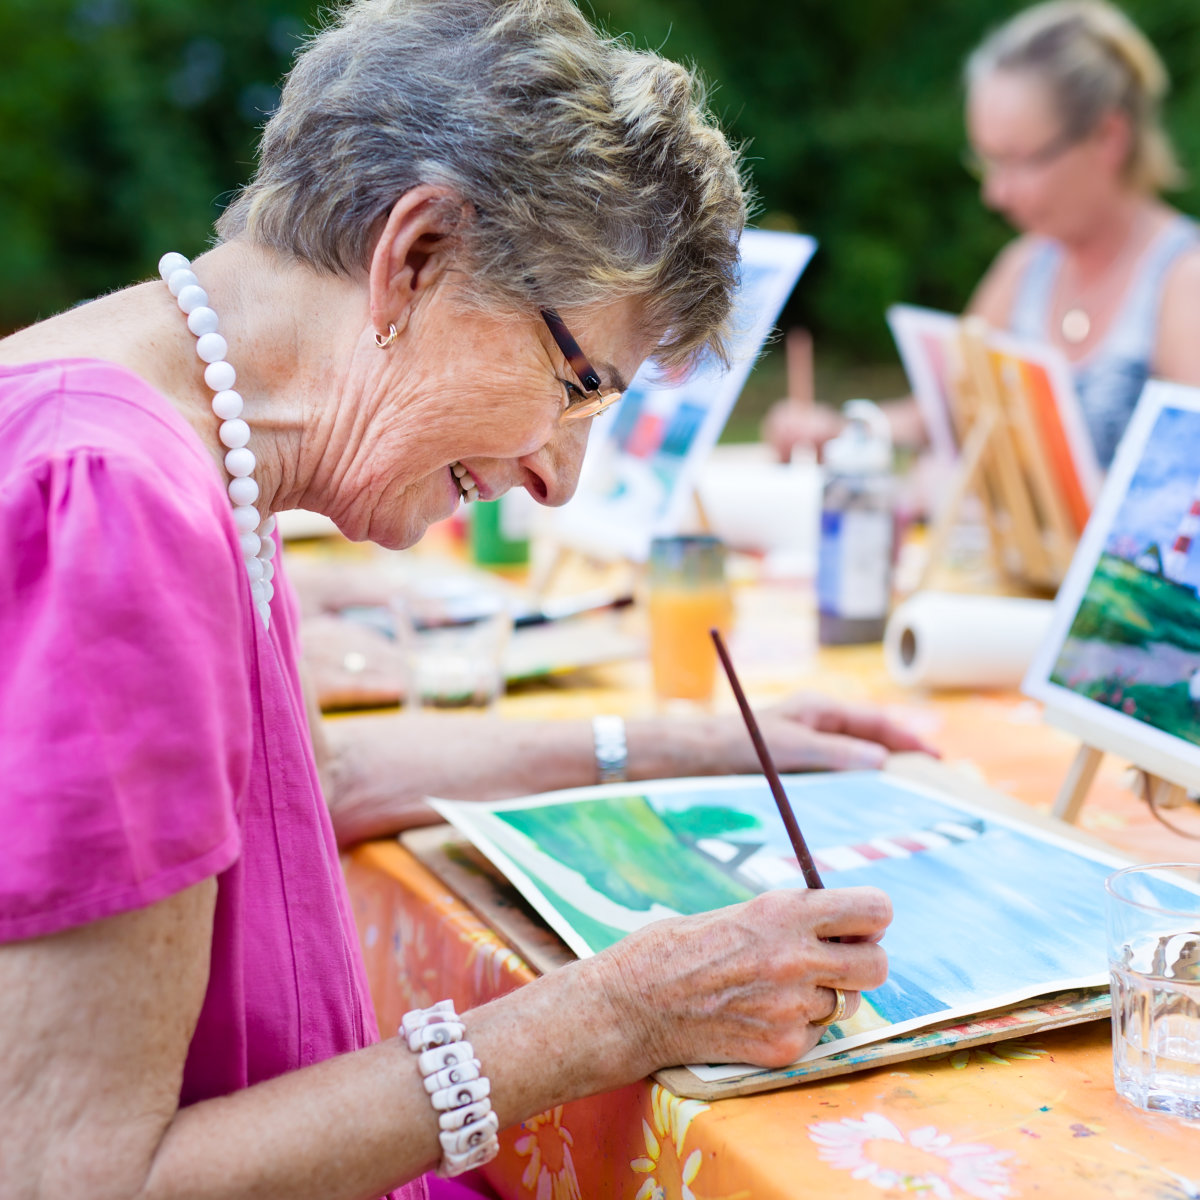 Side view of a happy senior woman smiling while drawing as a recreational activity